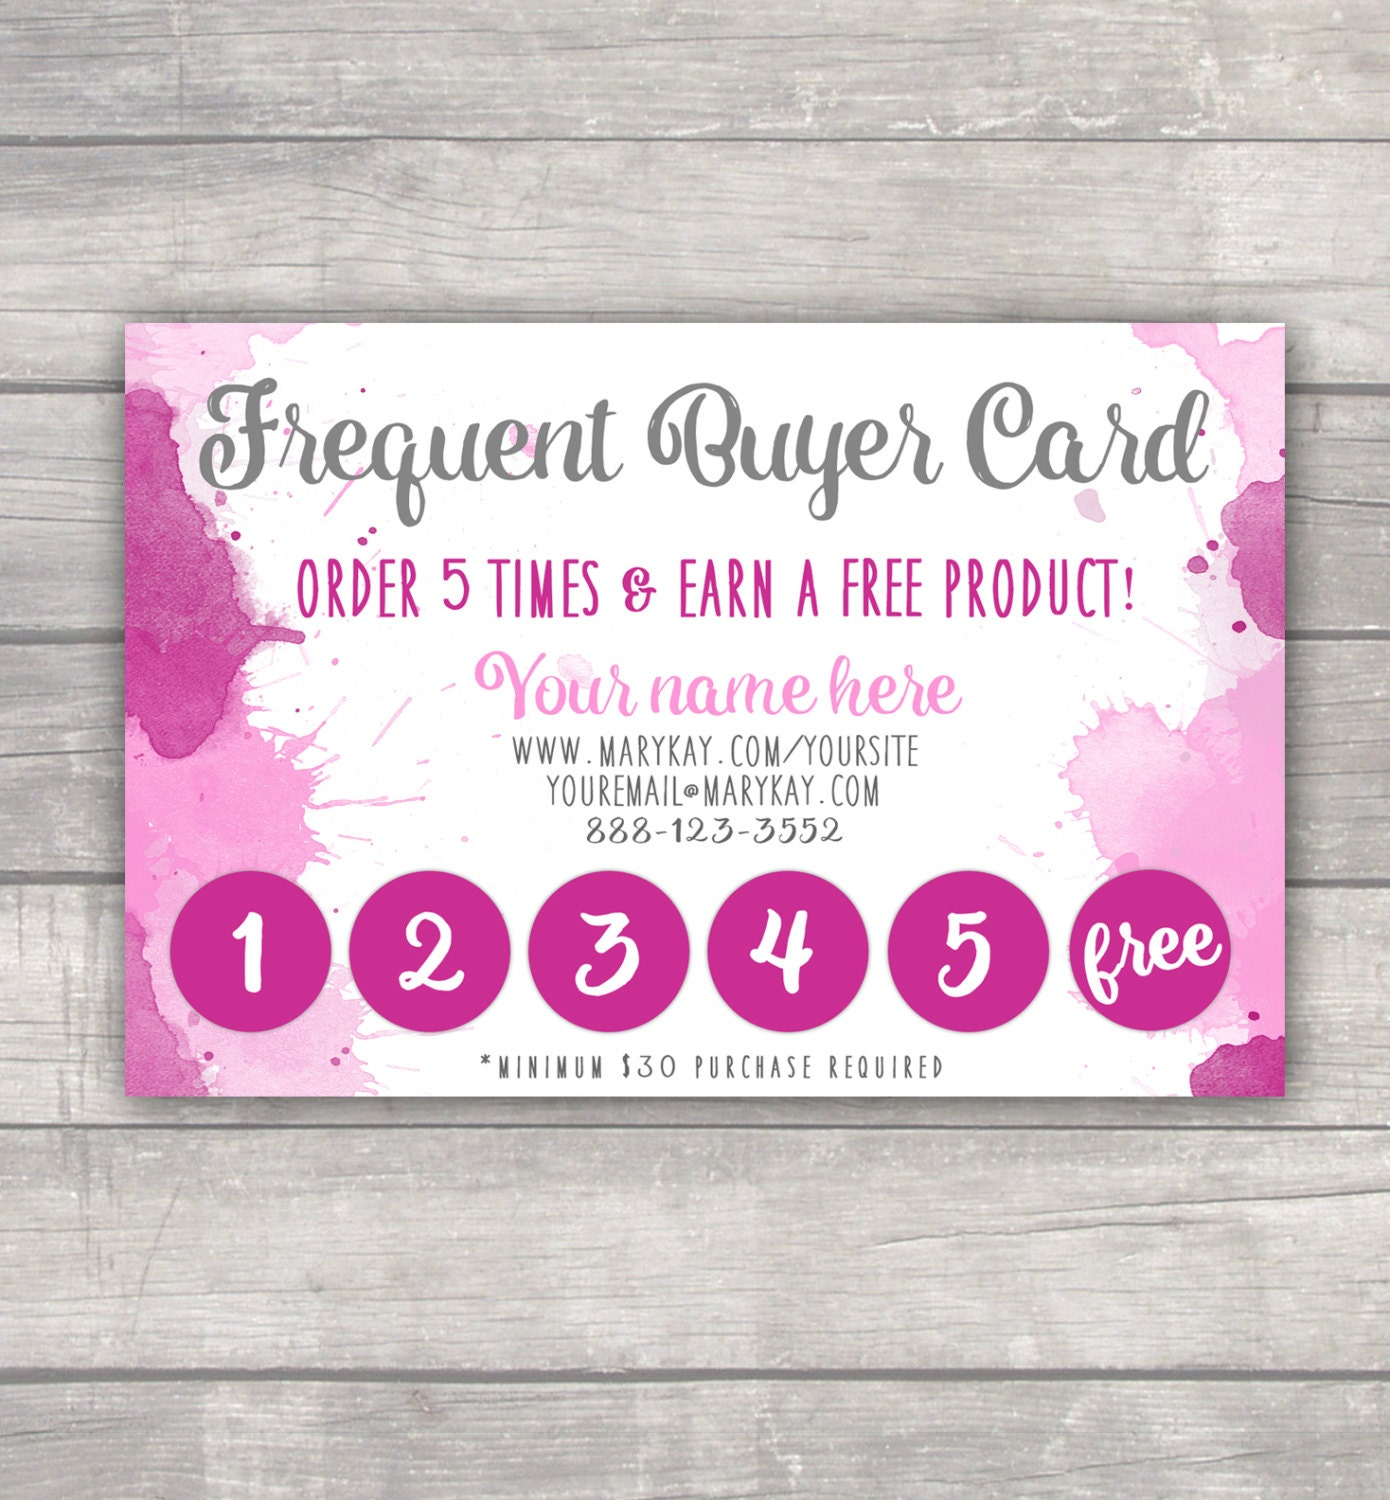 Frequent buyer card template free fieldstation frequent buyer card template free mary party invitations gangcraft net frequent buyer card template free reheart Gallery